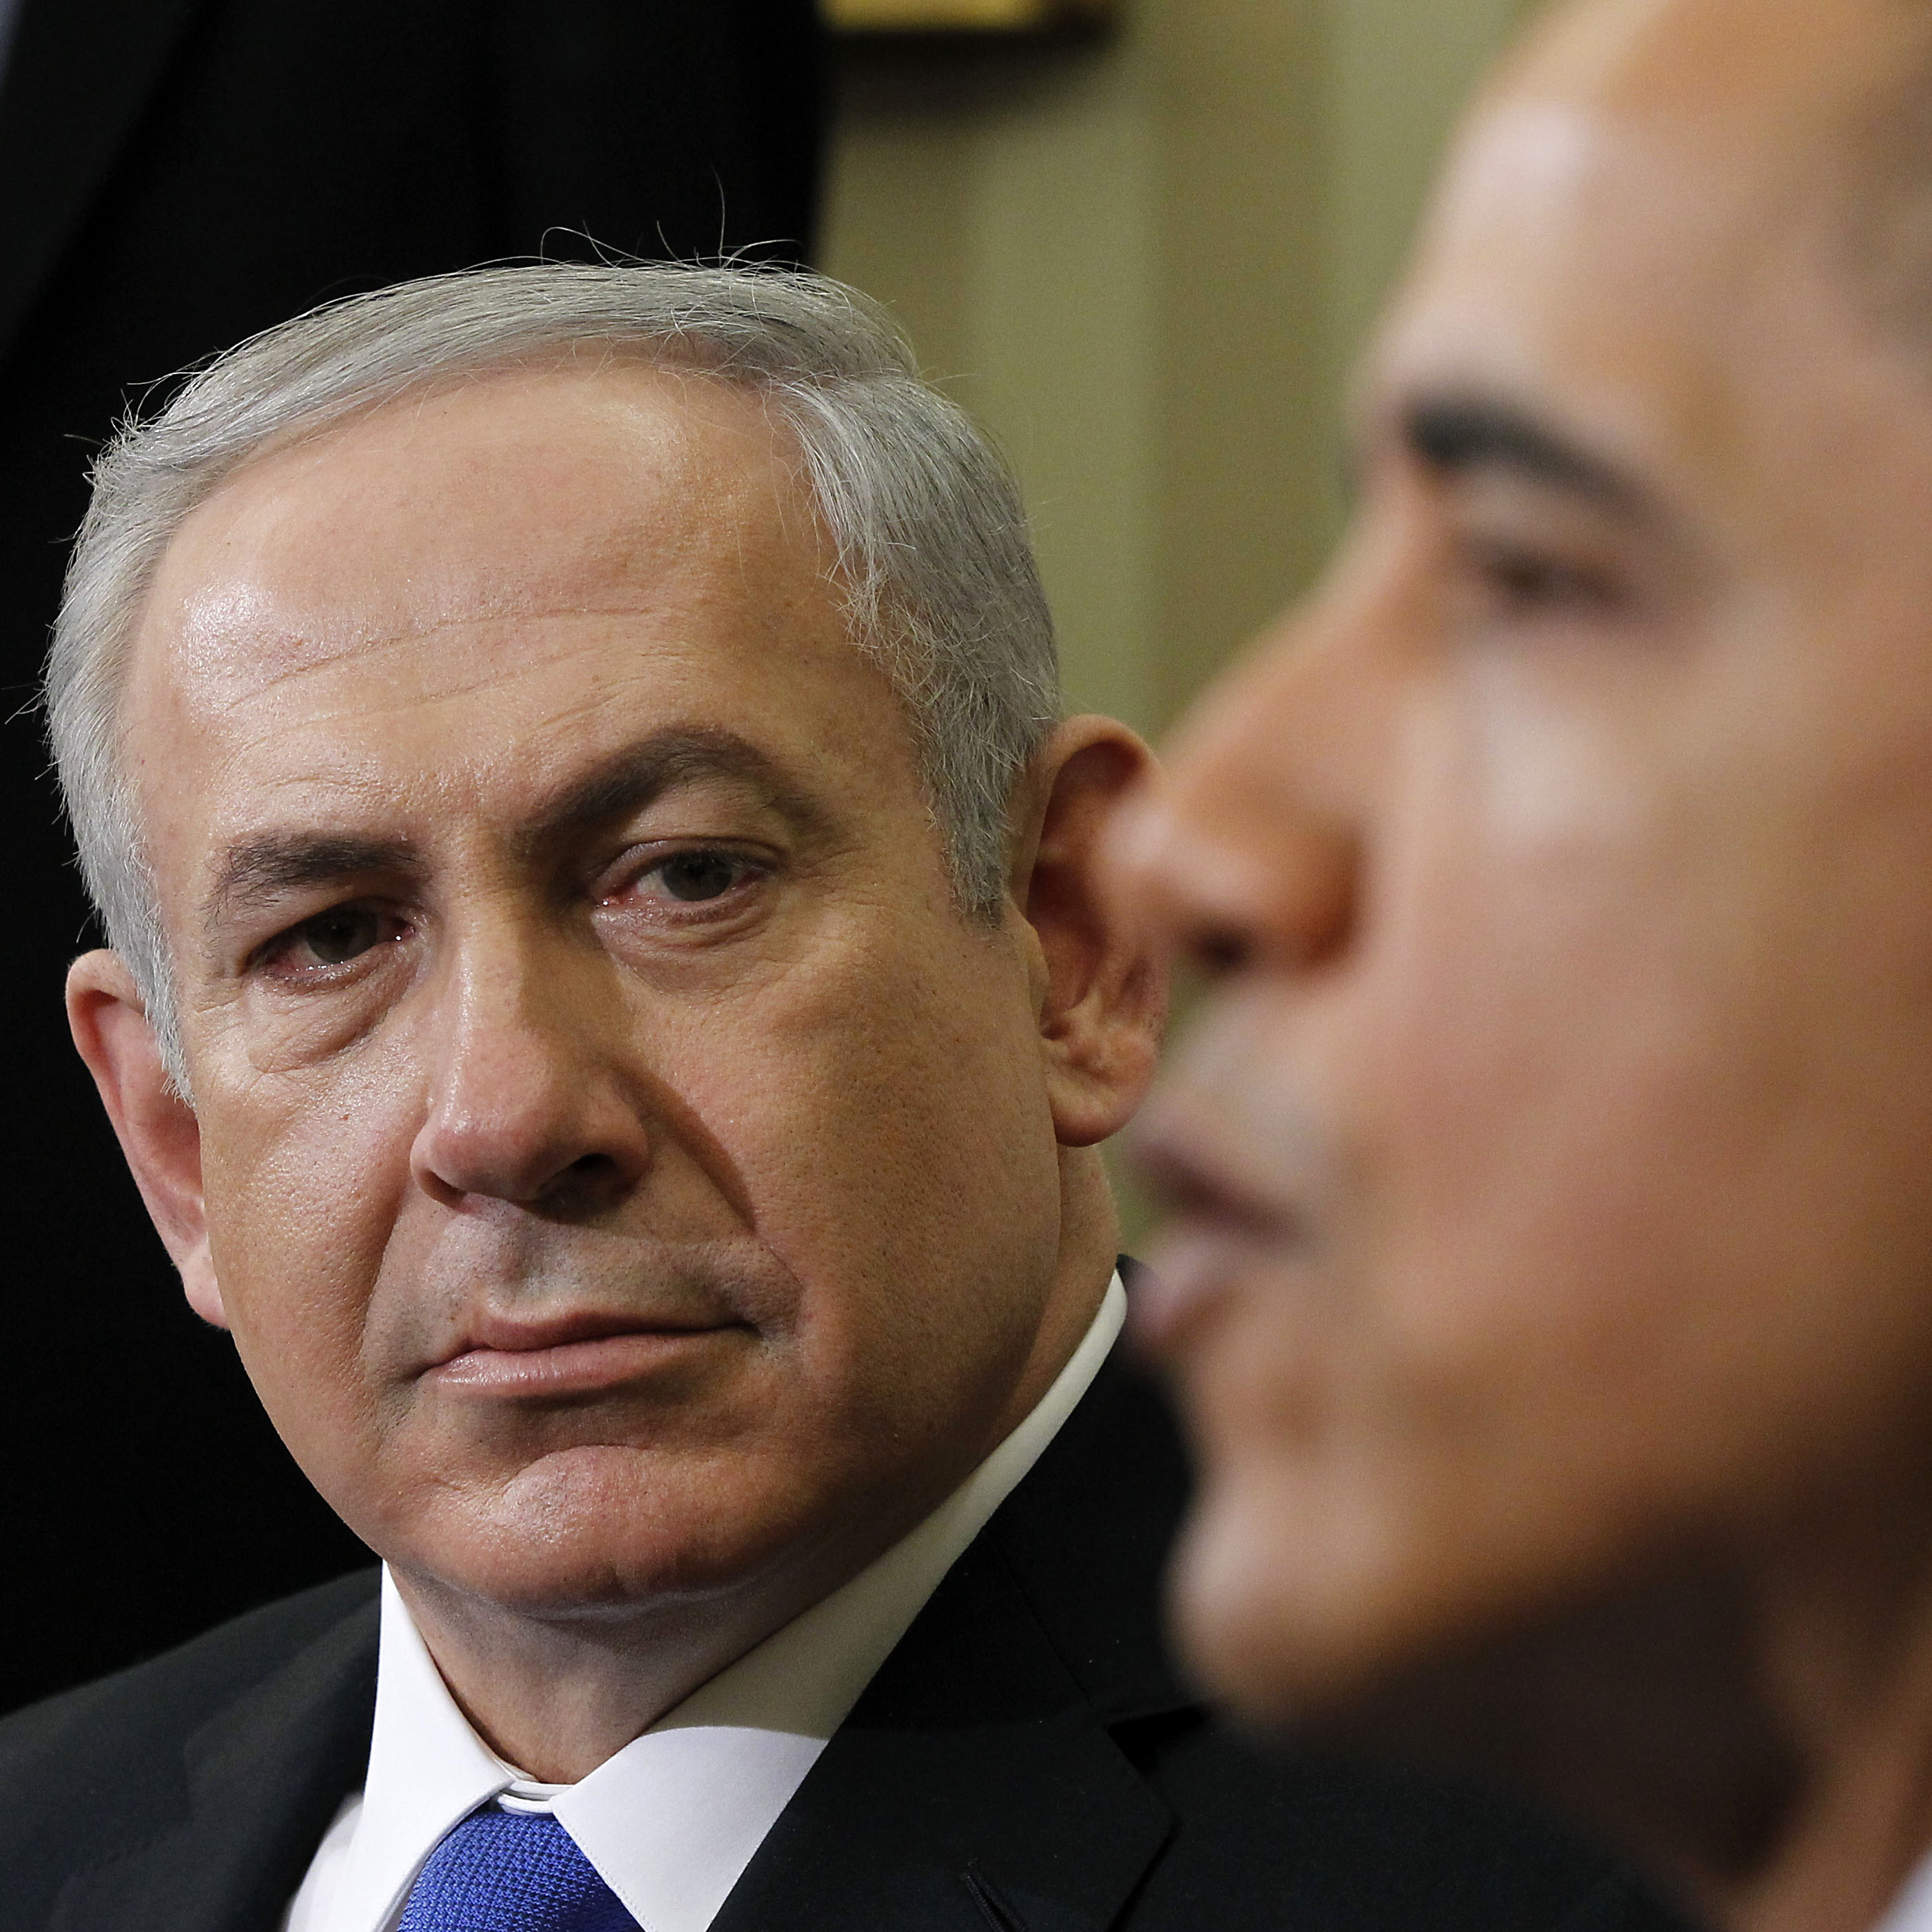 Israeli Prime Minister Benjamin Netanyahu and President Obama are expected to talk about Iran's nuclear program when they meet Wednesday in Israel. The Palestinian issue is currently seen as a lower priority. The leaders are shown here at a March 5, 2012, White House meeting.